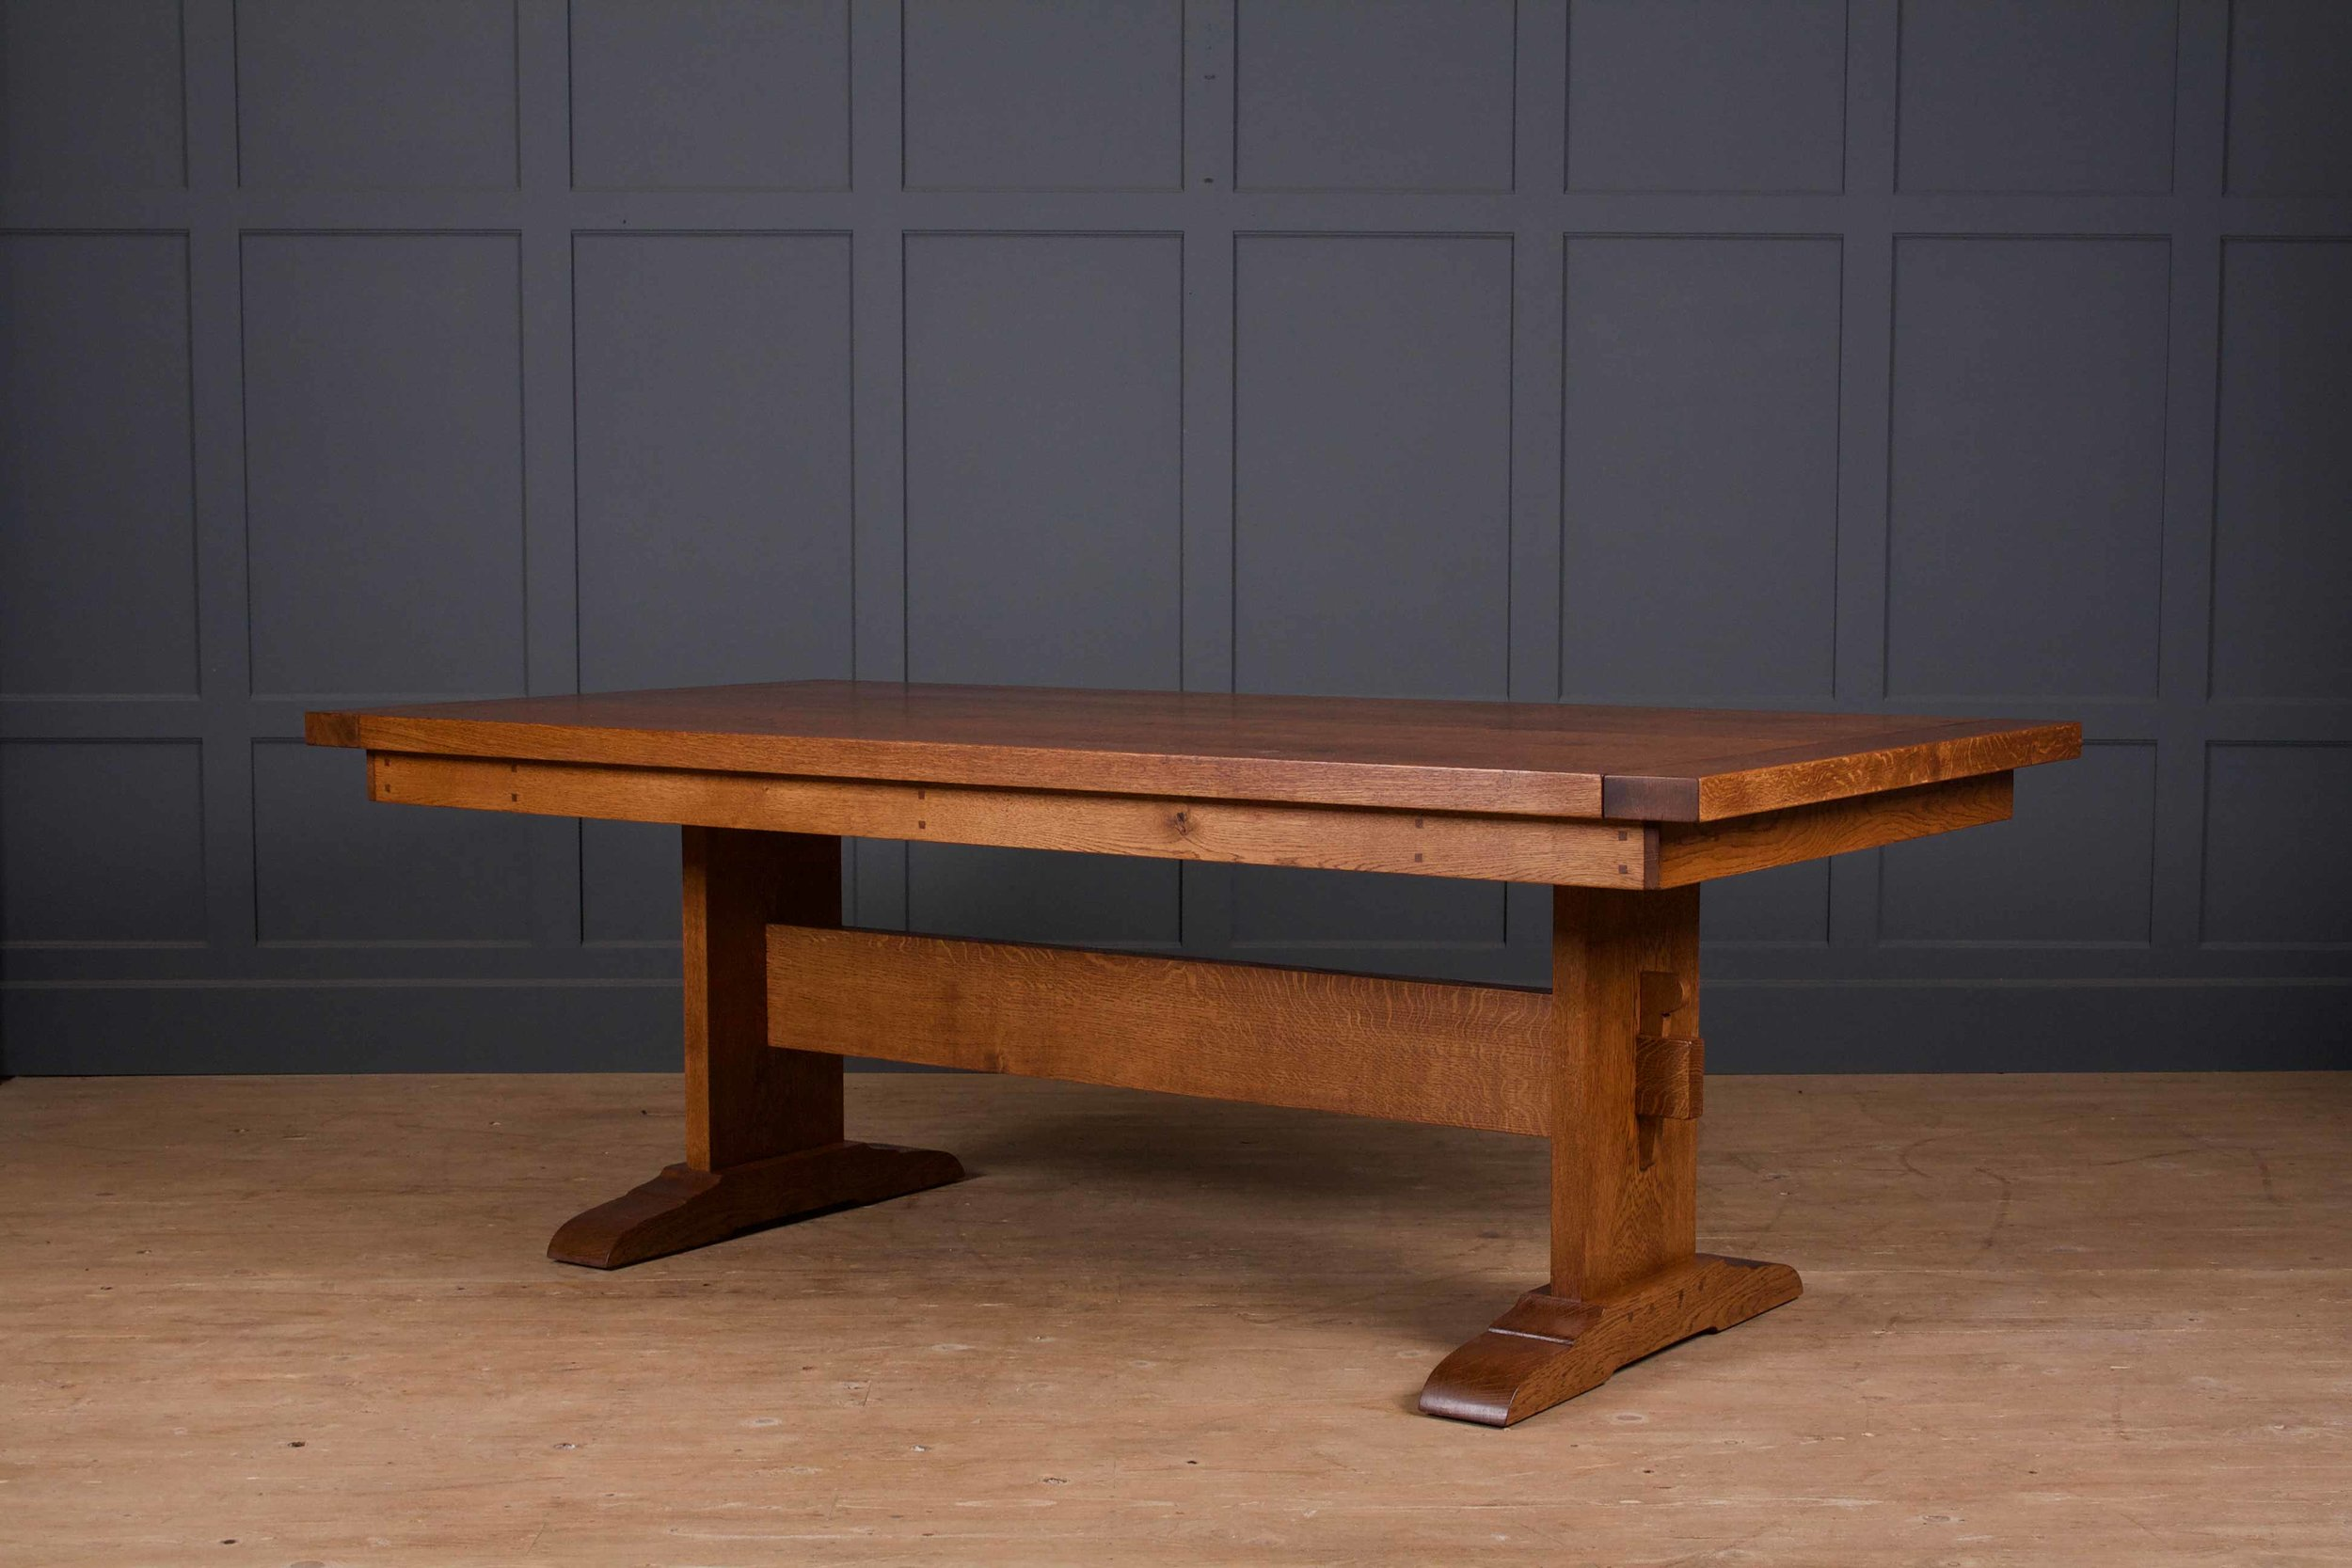 Oak-Shaker-Extending-Table.jpg